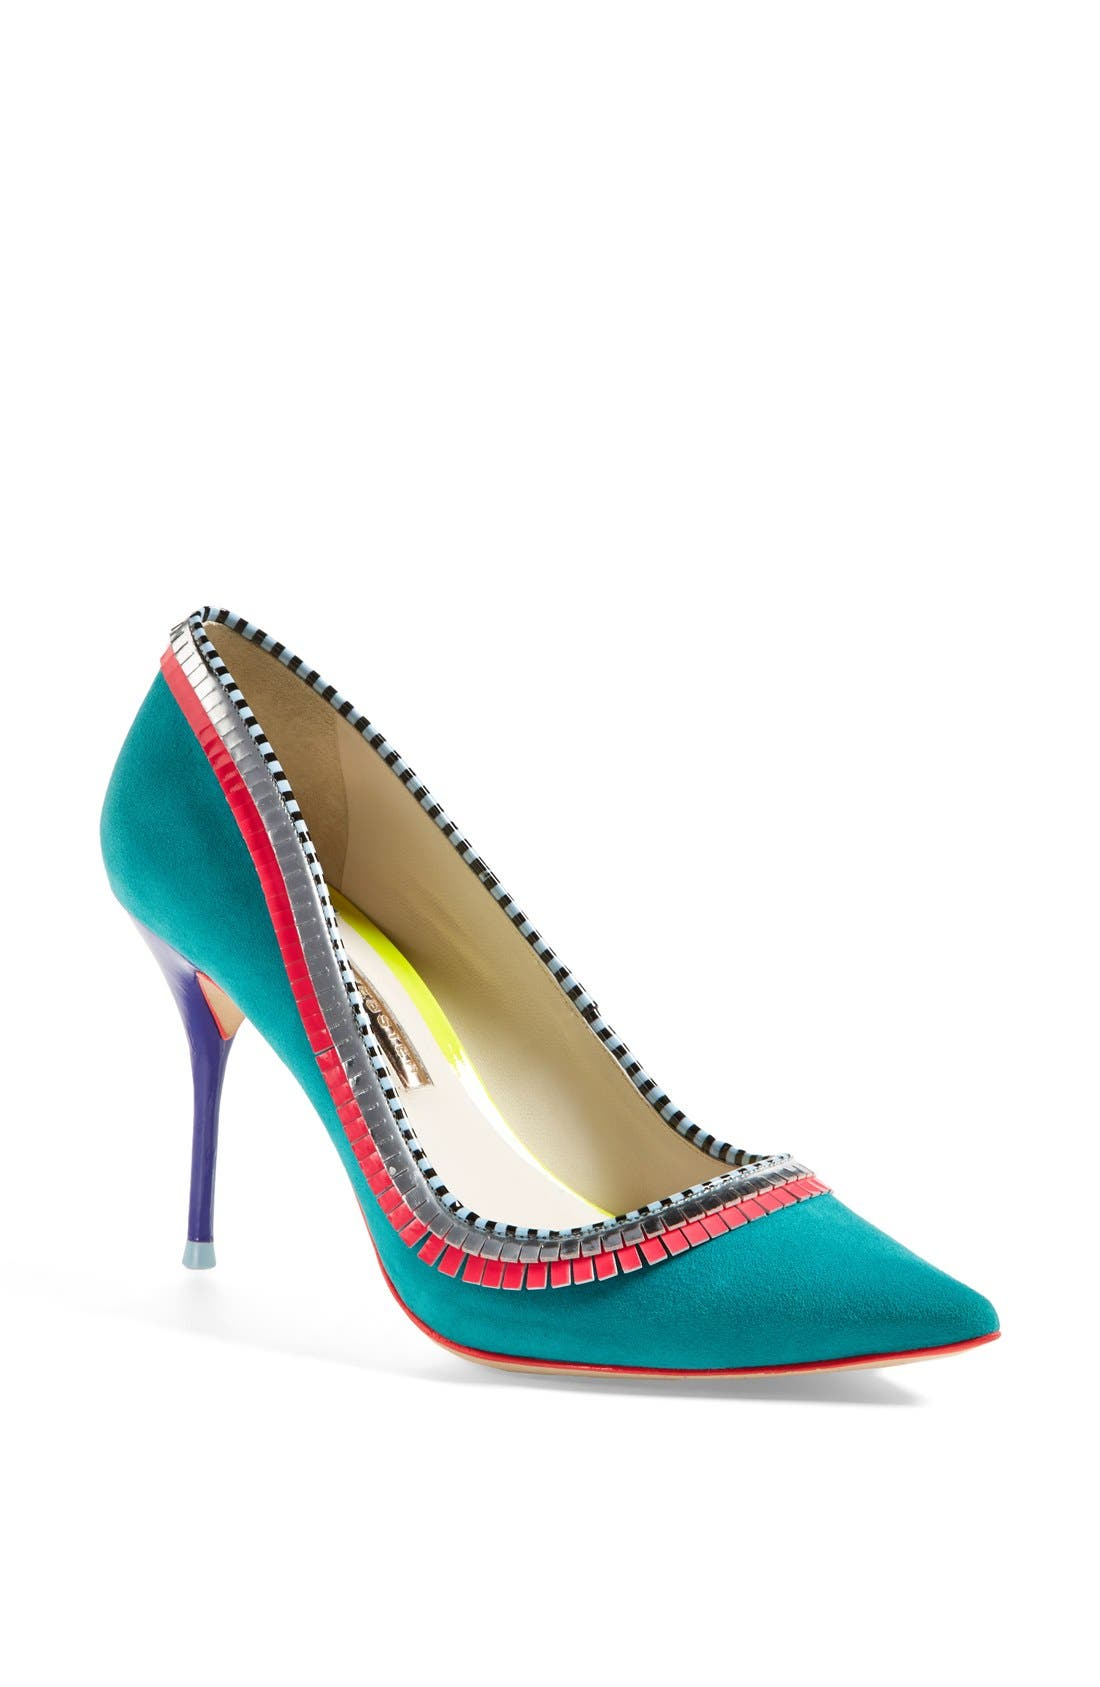 Main Image - Sophia Webster 'Lola' Pump